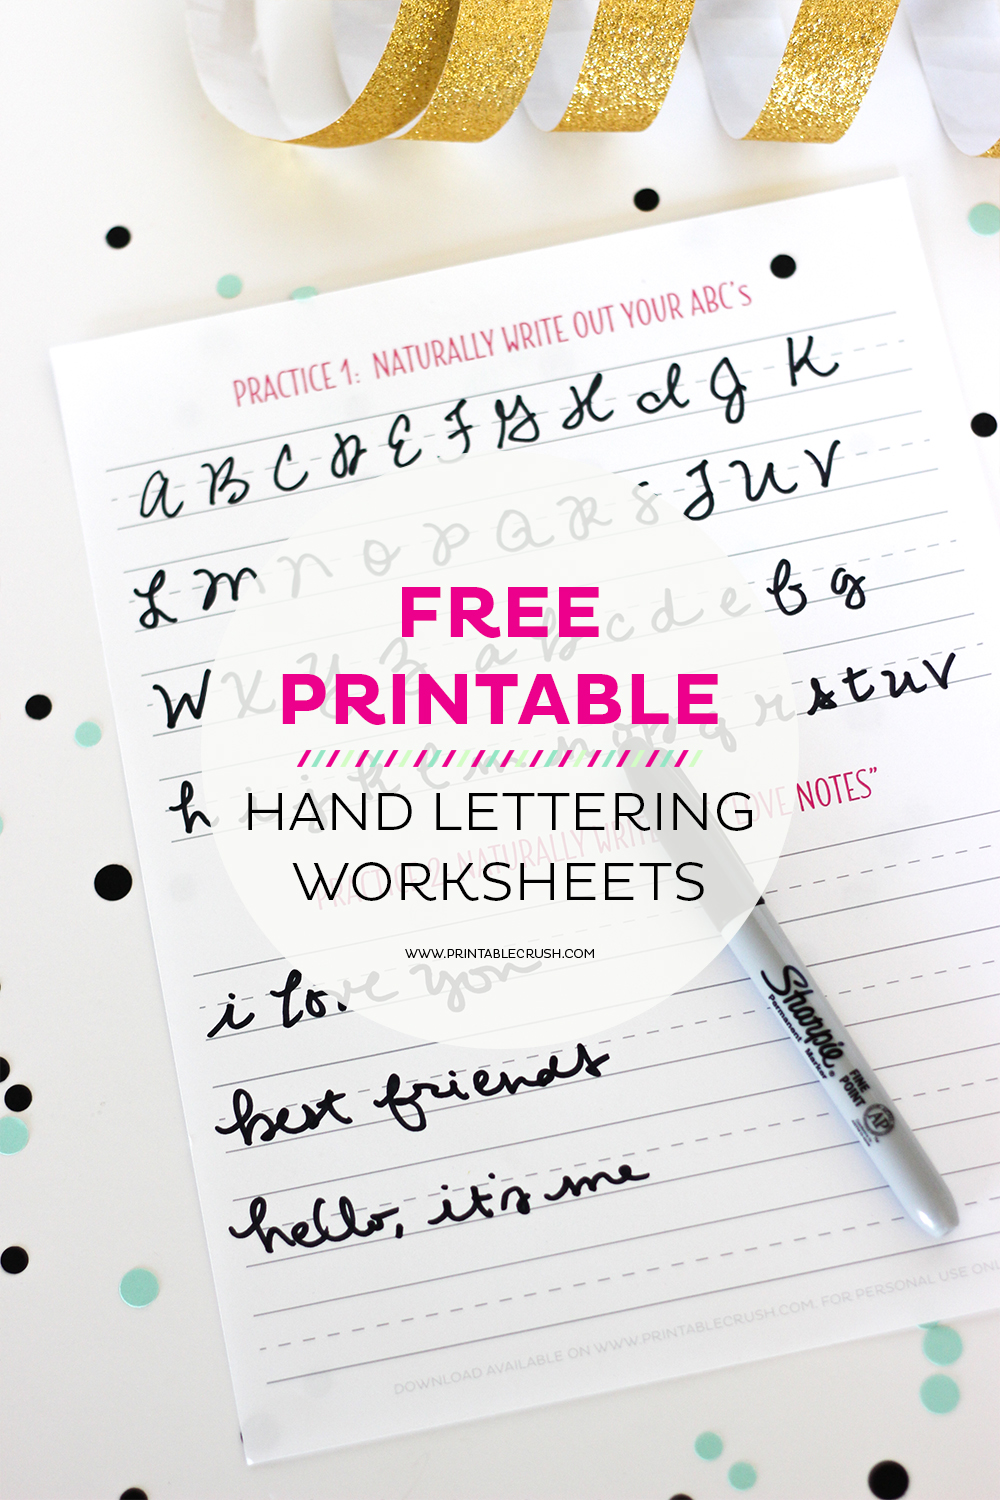 image relating to Lettering Printable titled 3 Cost-free Hand Lettering Worksheets for Newcomers - Printable Crush